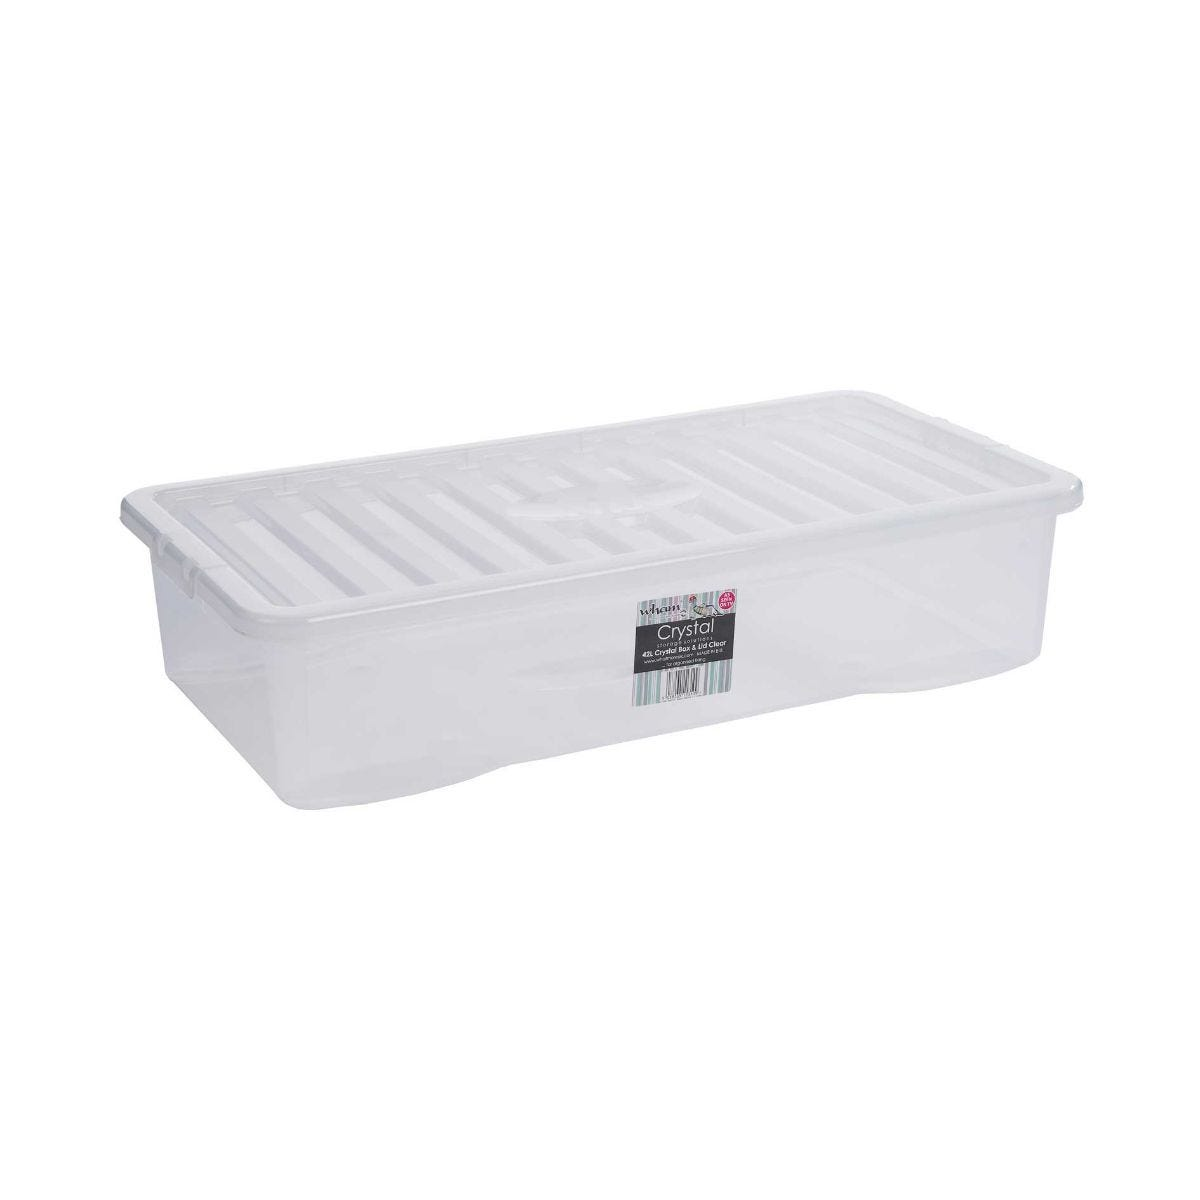 Image of 42 Litre Crystal Storage Box and Lid